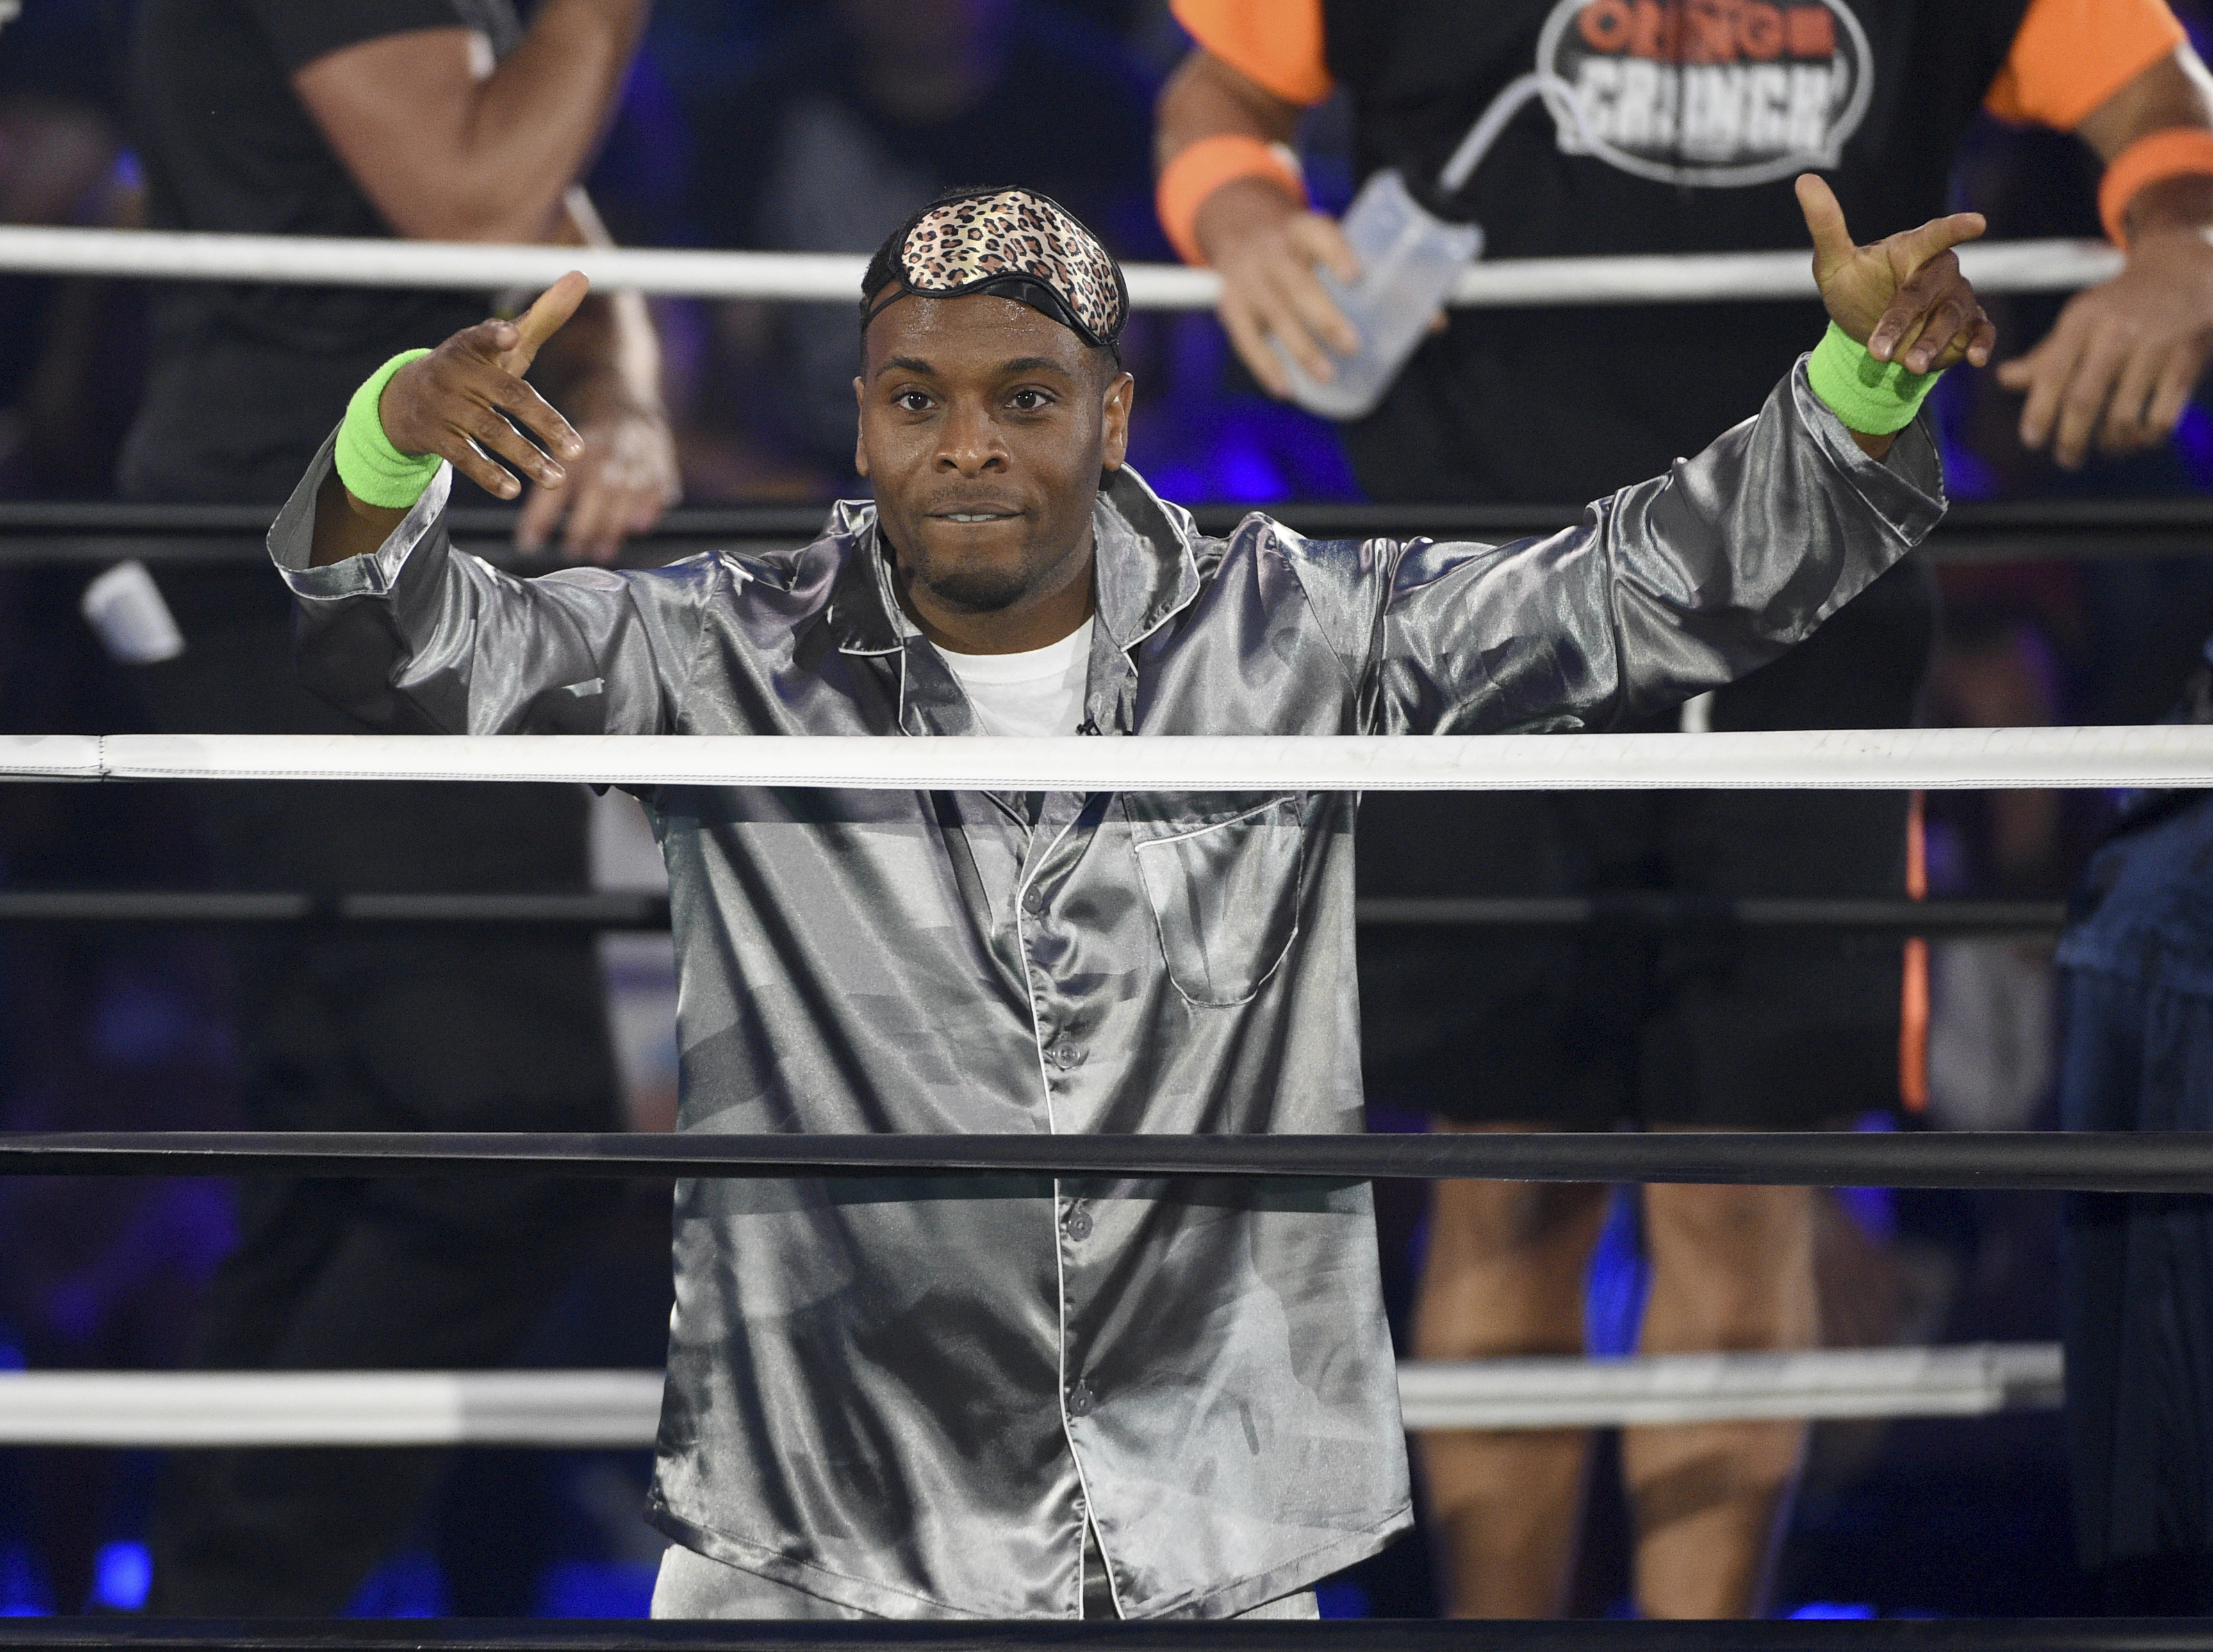 Kel Mitchell participates in the Pillow Fight Fight Night challenge at the Kids' Choice Sports Awards on Thursday, July 11, 2019, at the Barker Hangar in Santa Monica, Calif. (Photo by Chris Pizzello/Invision/AP)